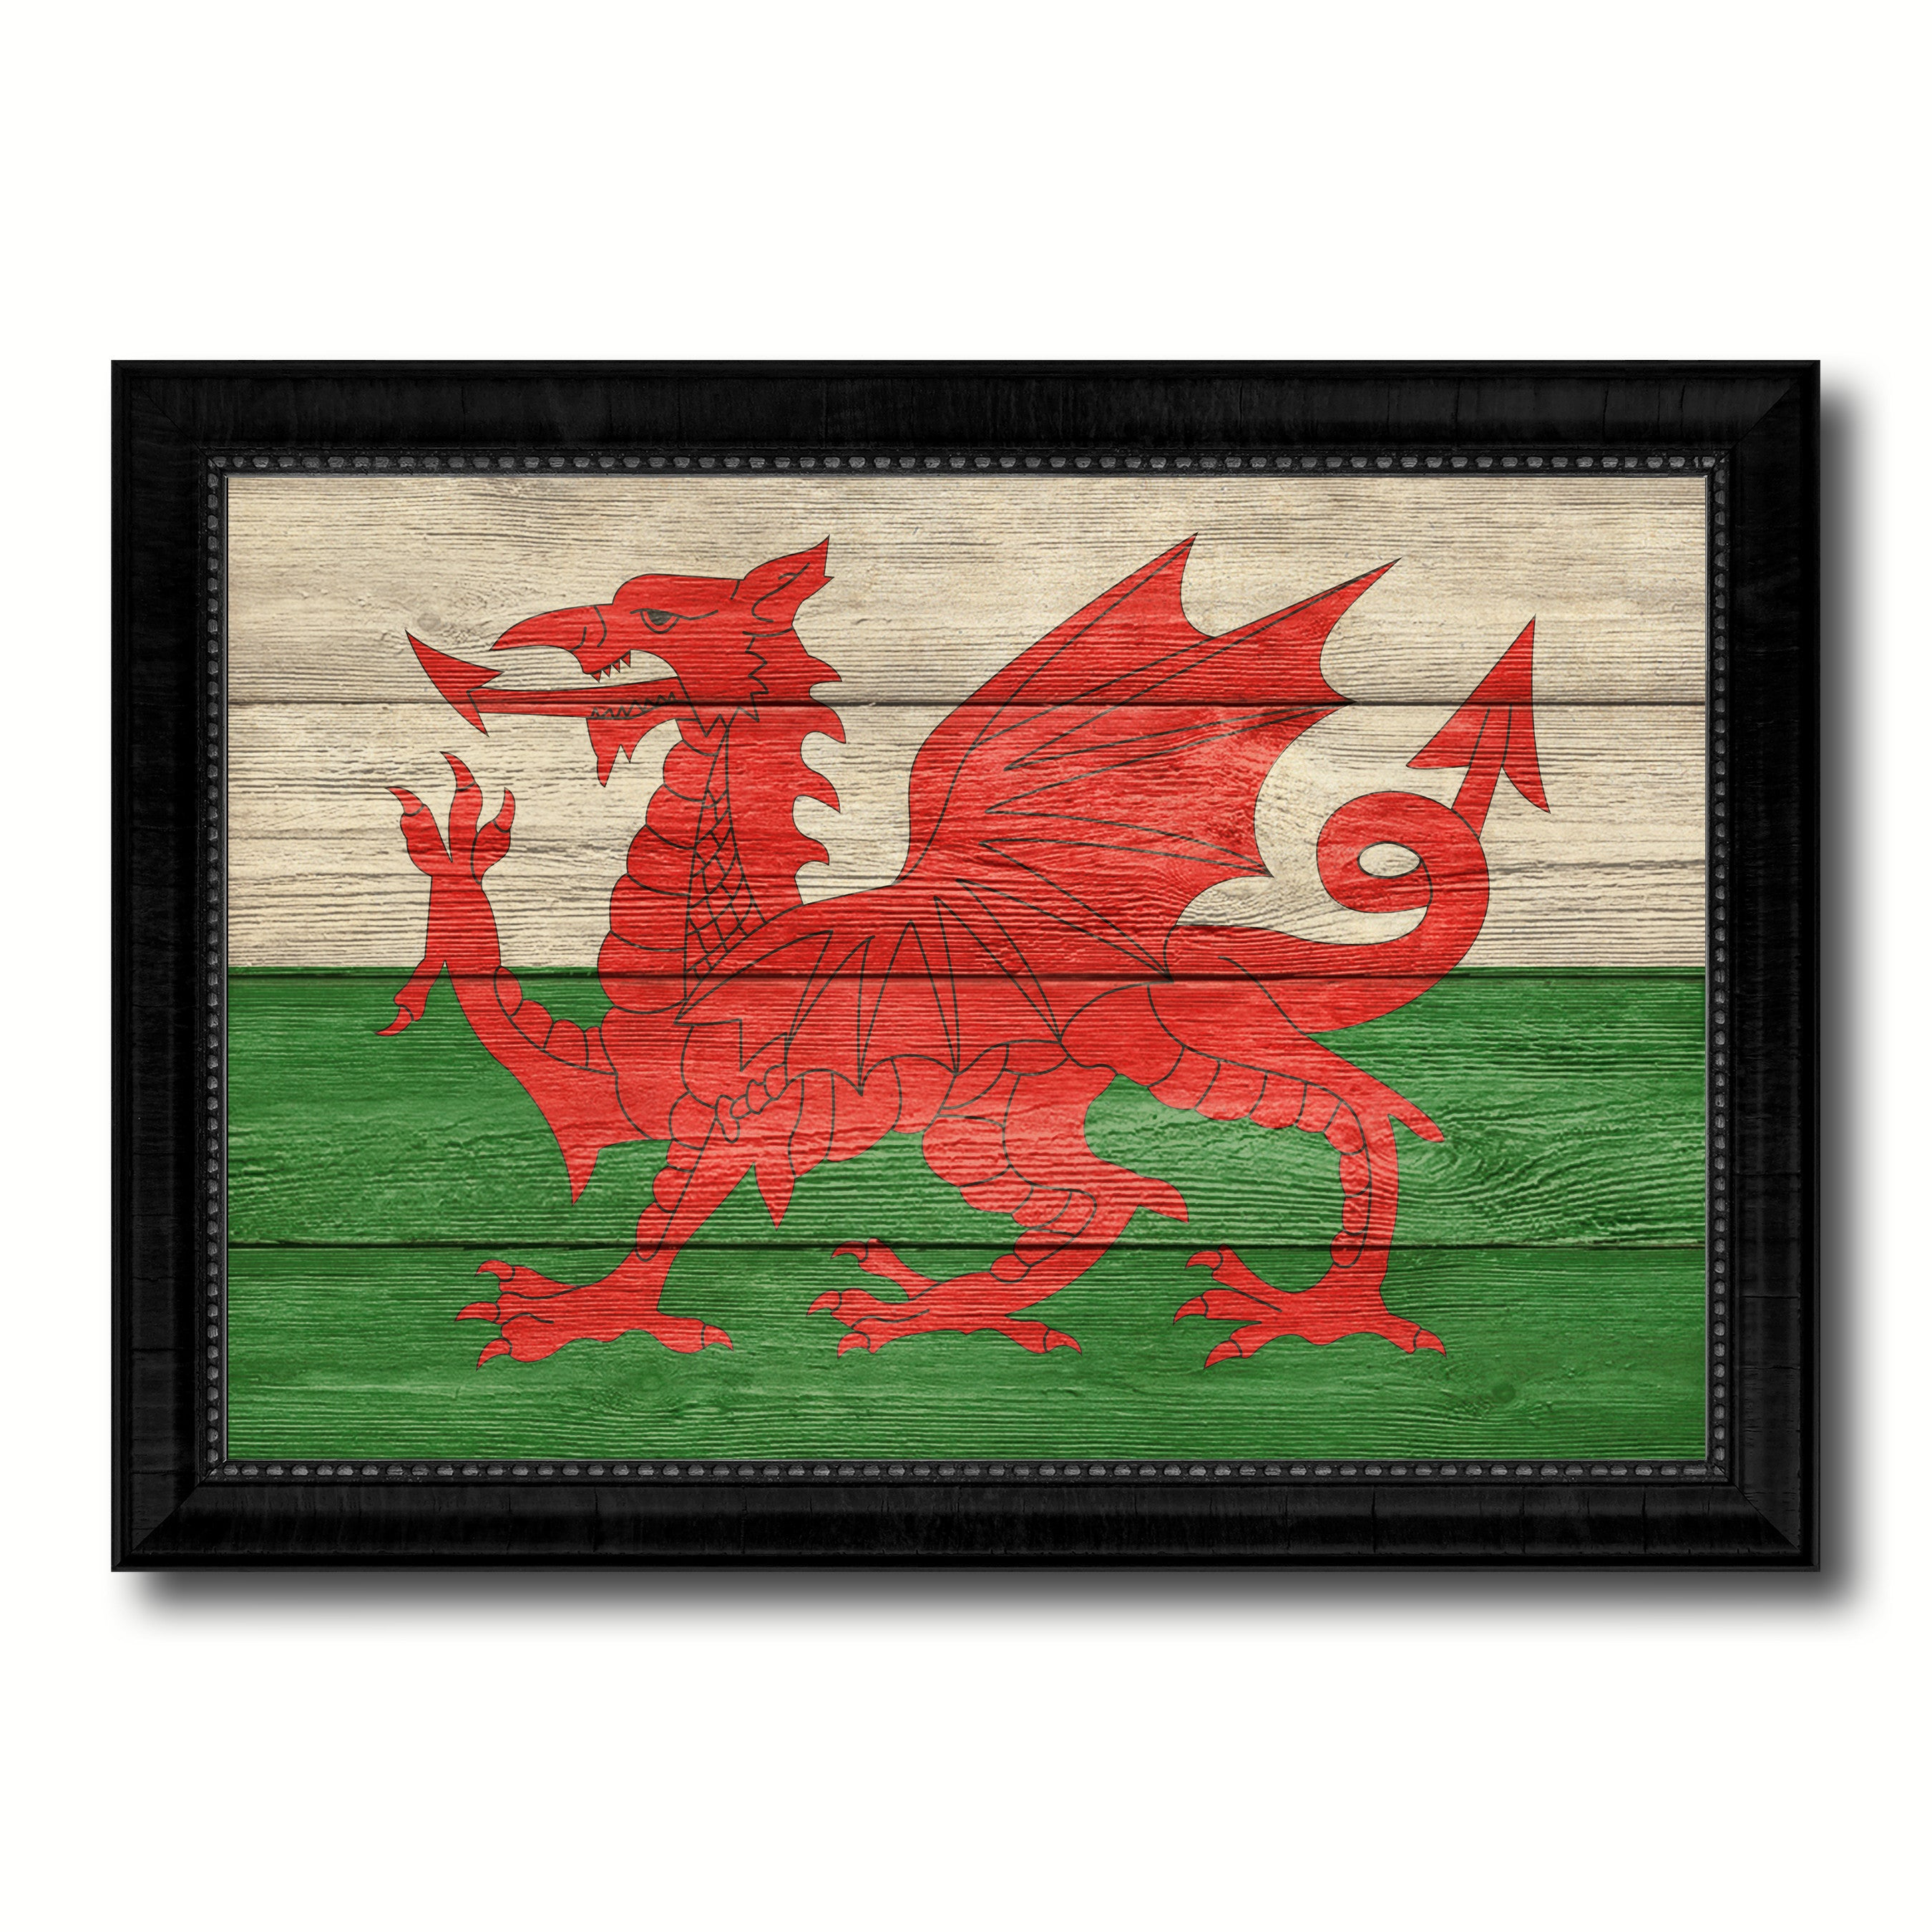 Wales Country Flag Texture Canvas Print With Black Picture Frame Home Decor Wall Art Decoration Collection Gift Ideas